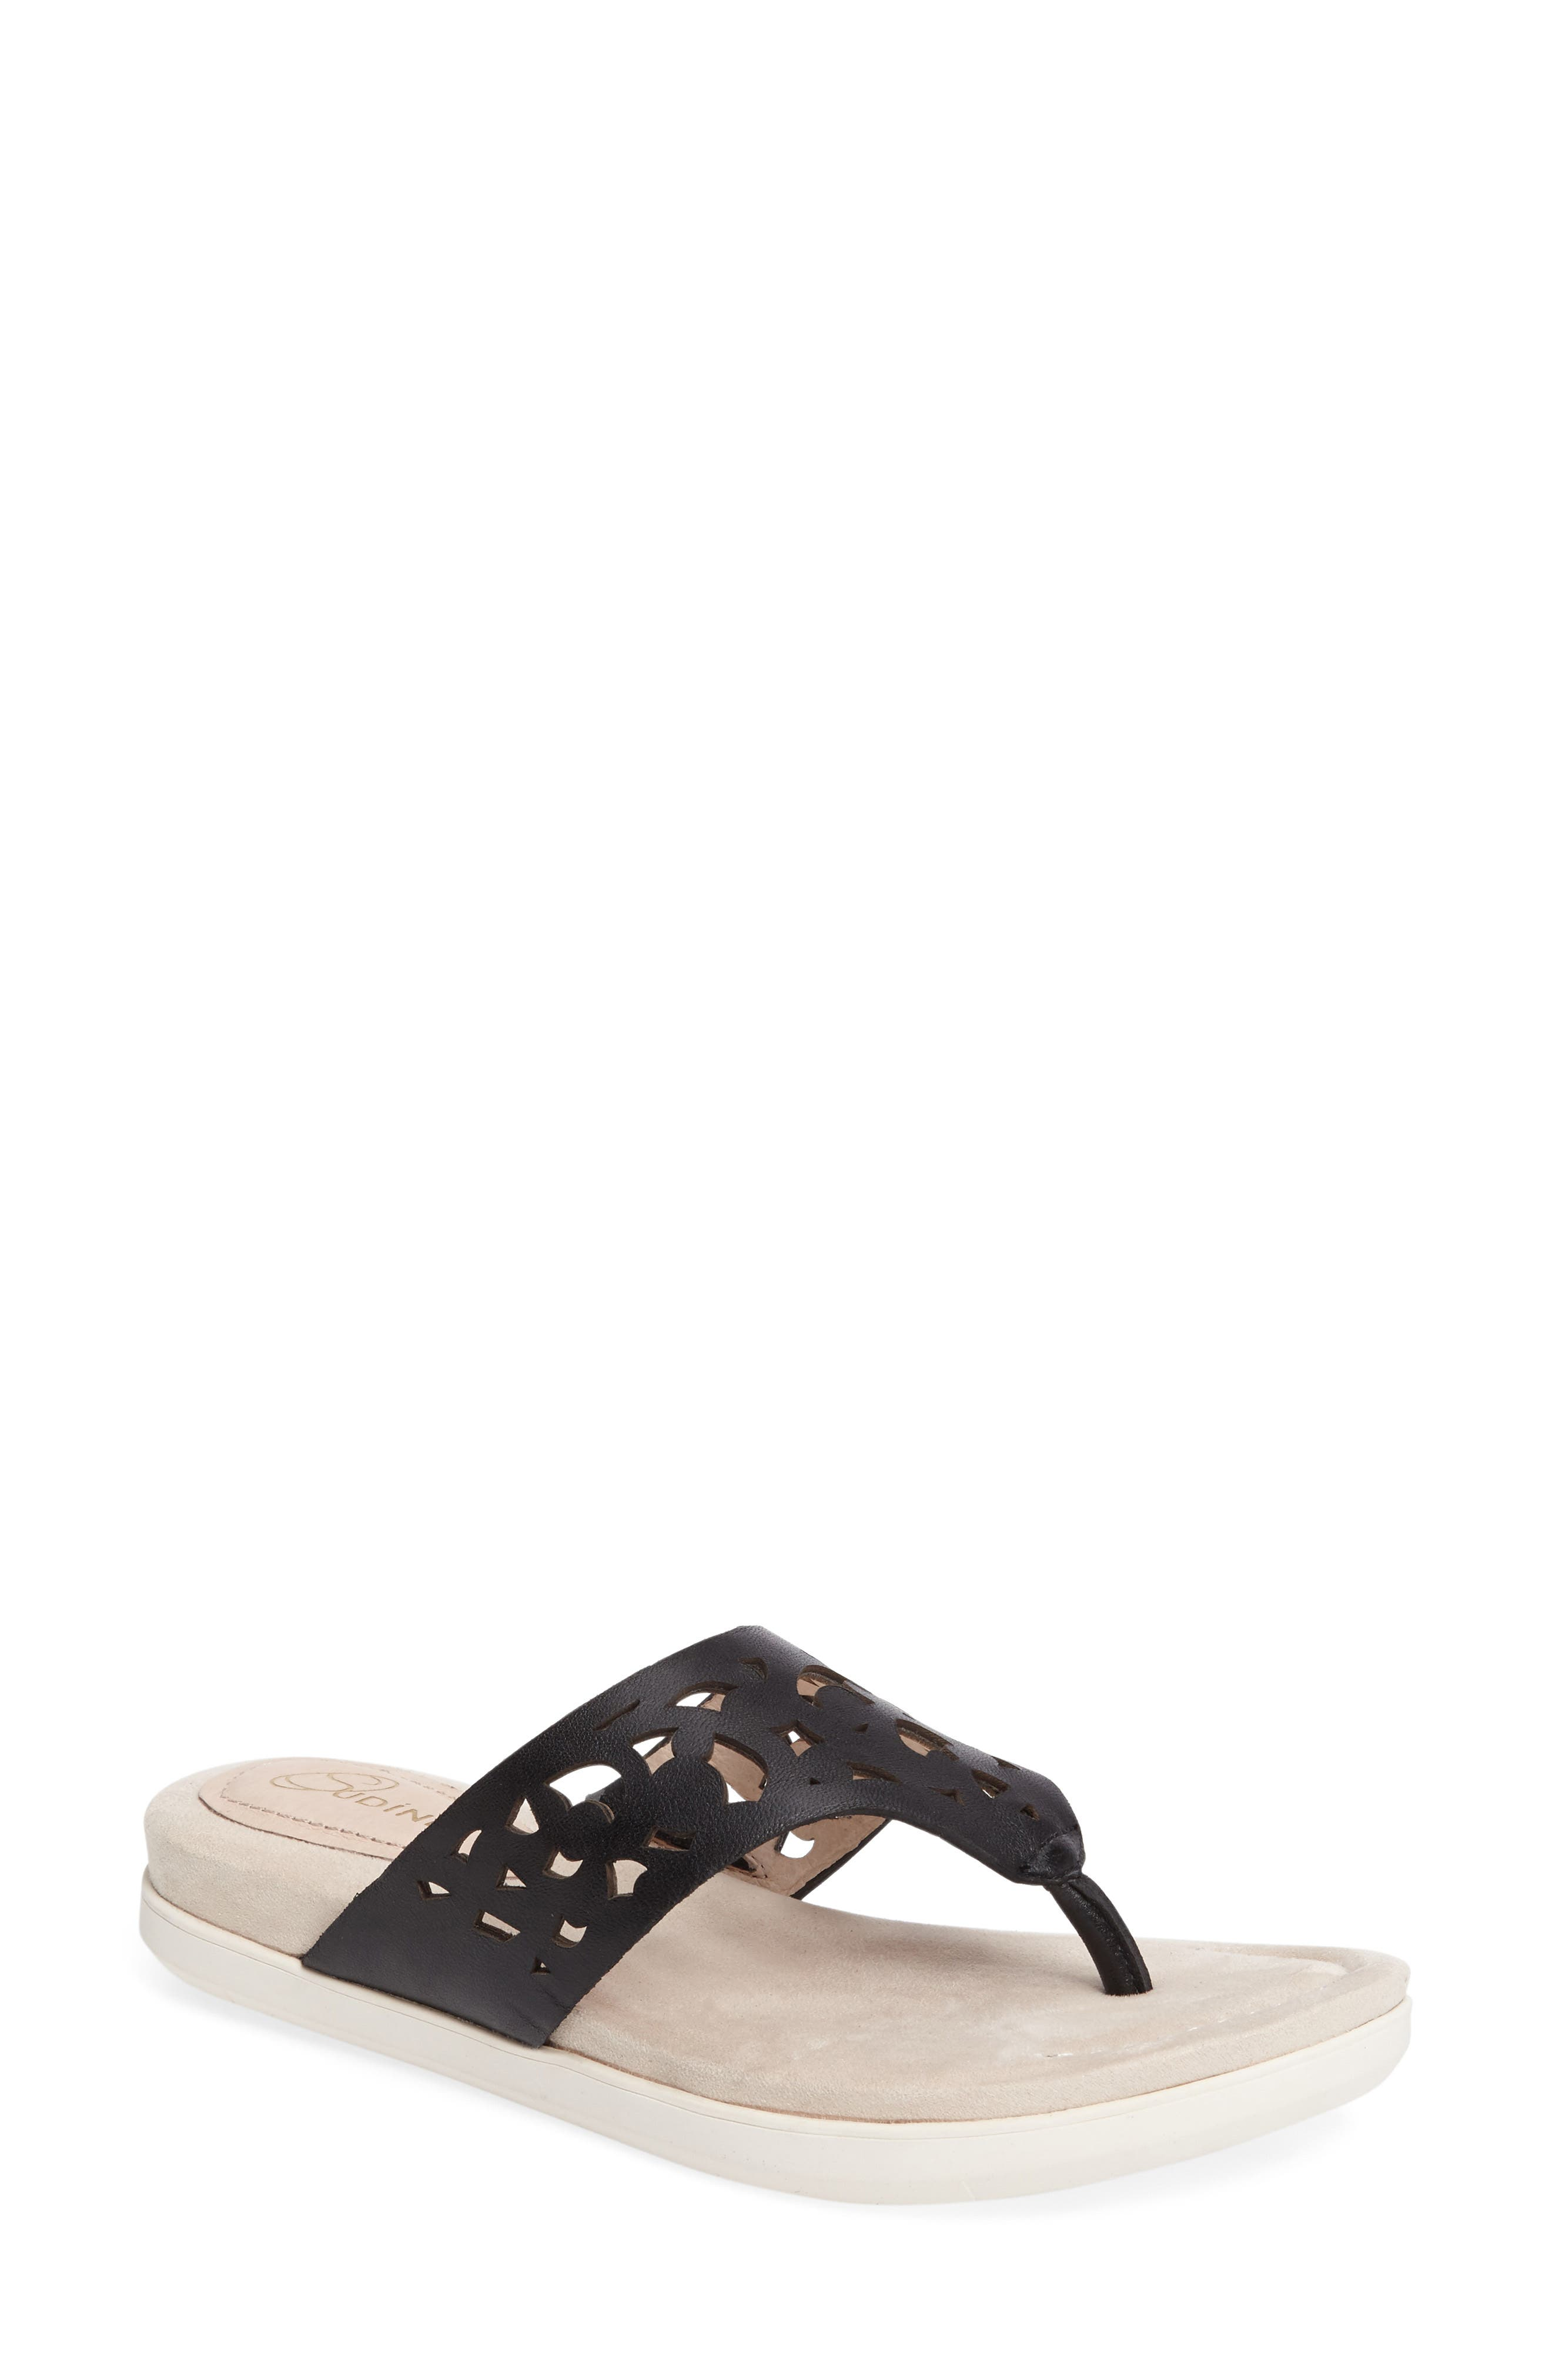 Alternate Image 1 Selected - Sudini Sally Perforated Flip Flop (Women)